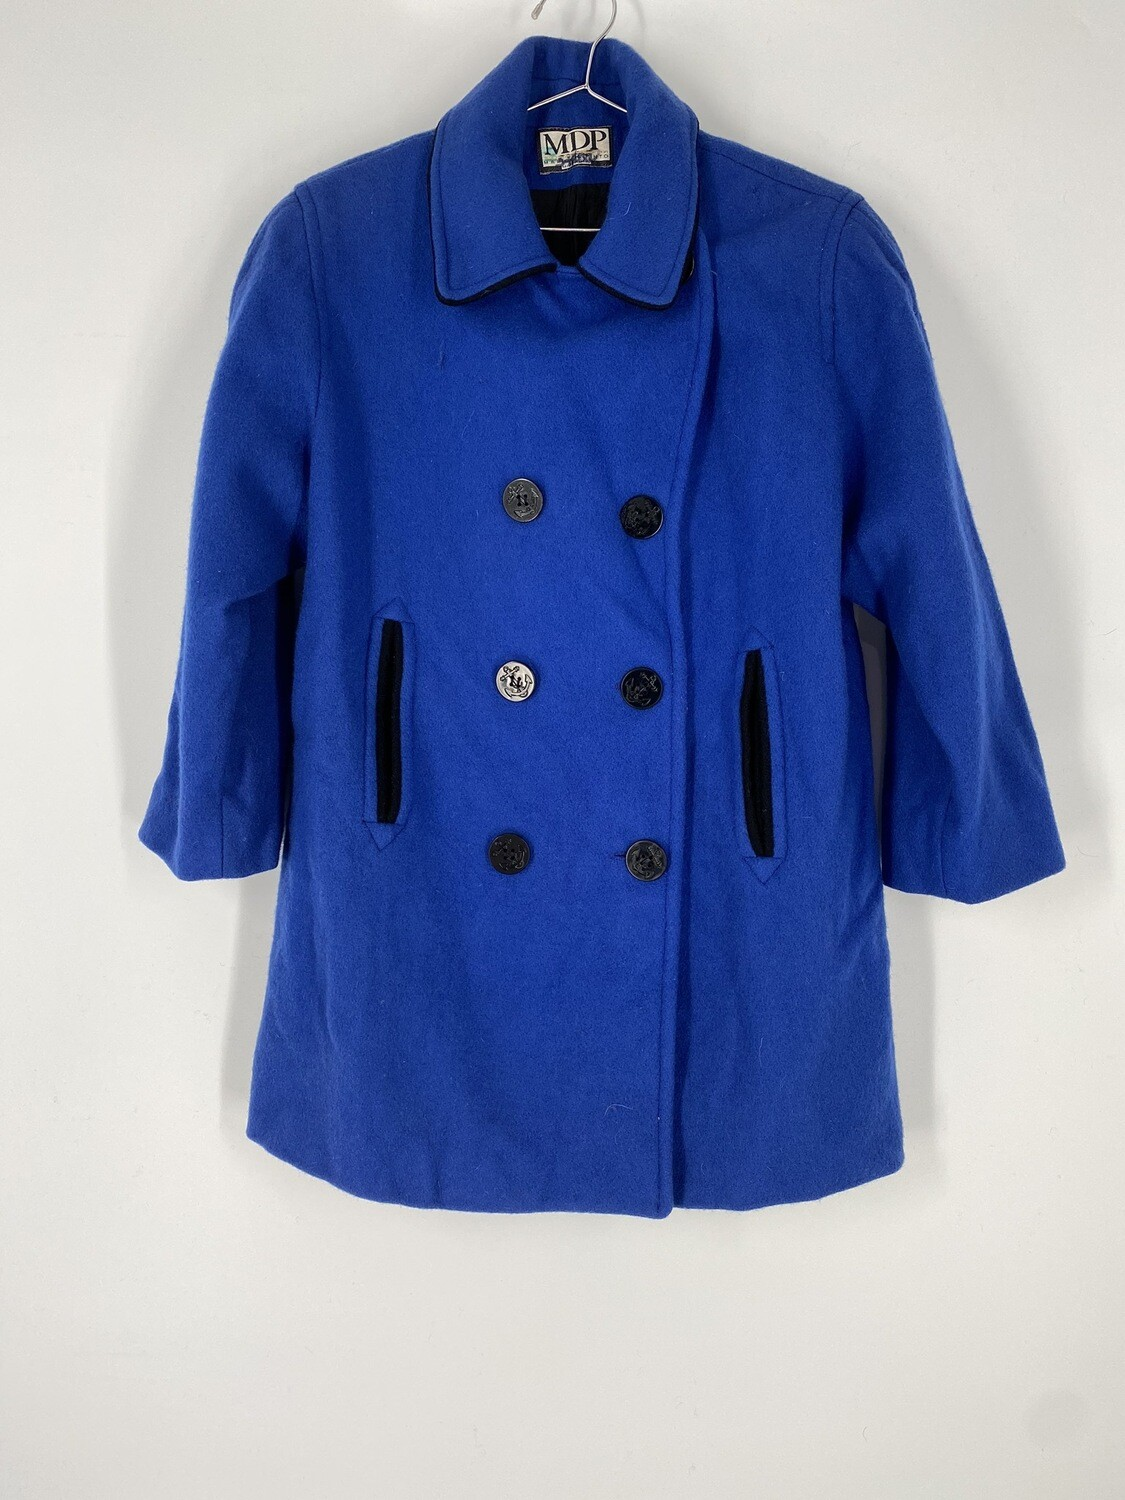 MDP Blue Heavy Coat Size L